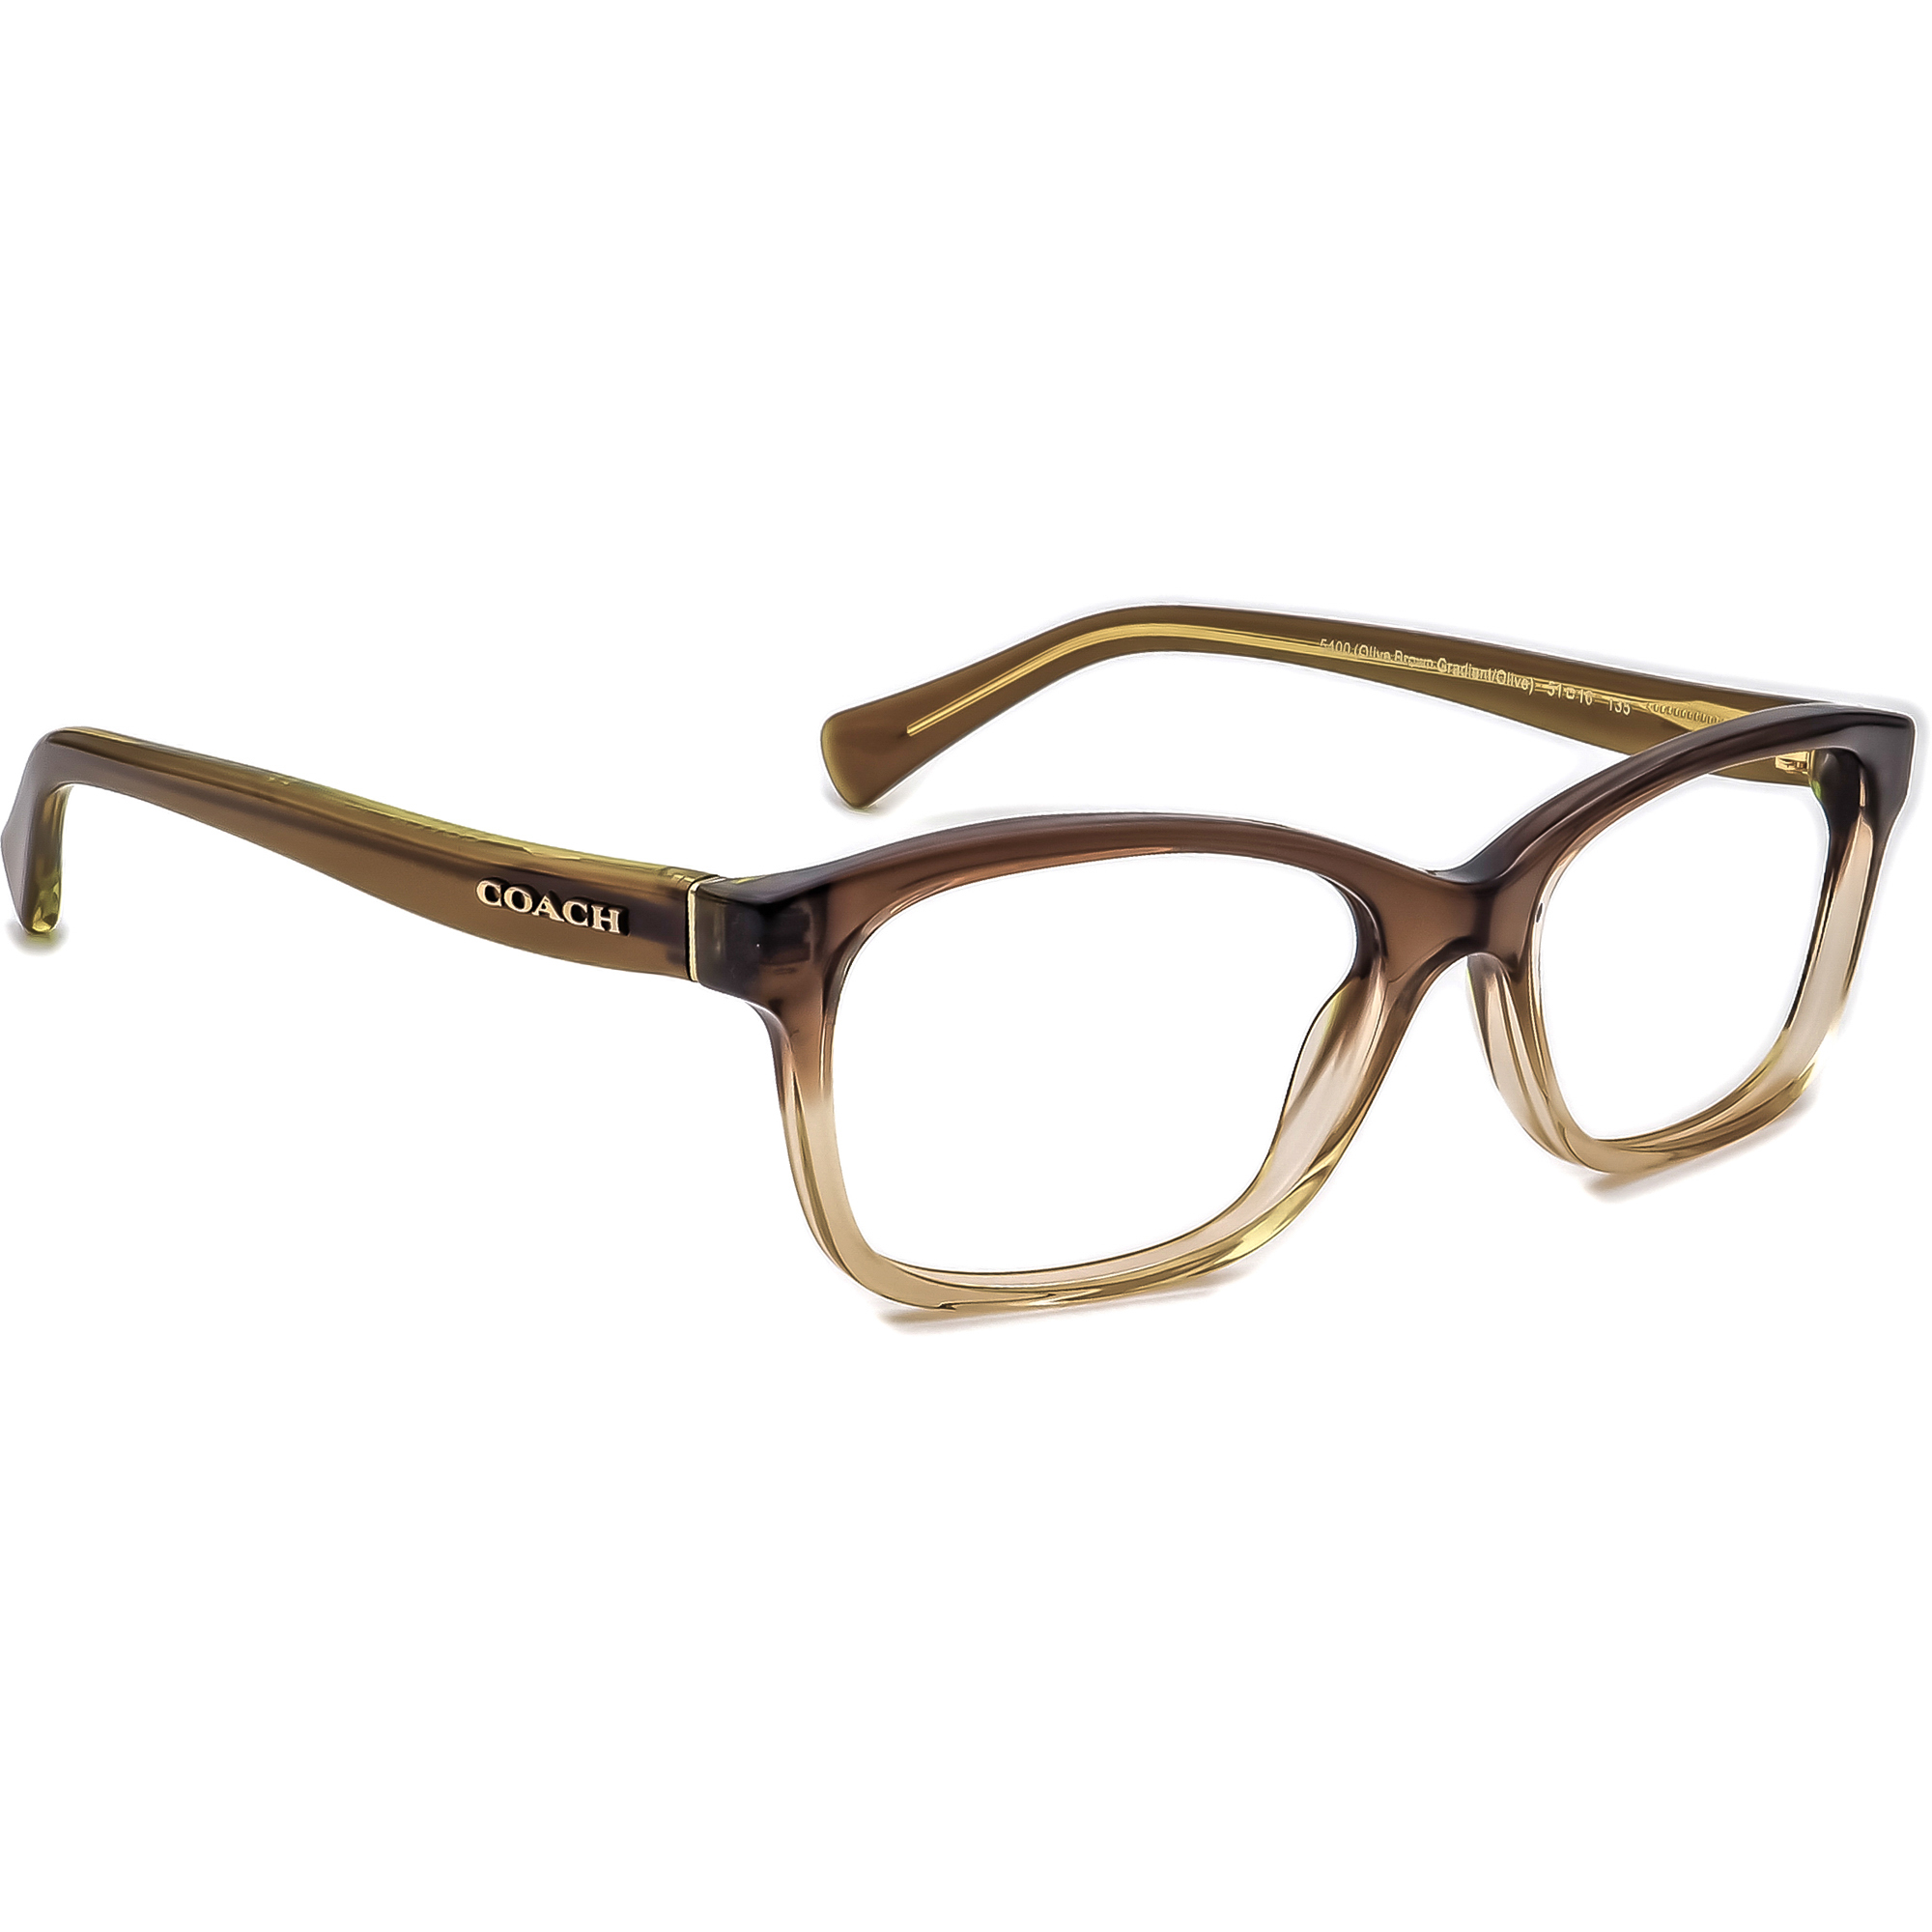 Coach HC 6089 5400 Eyeglasses